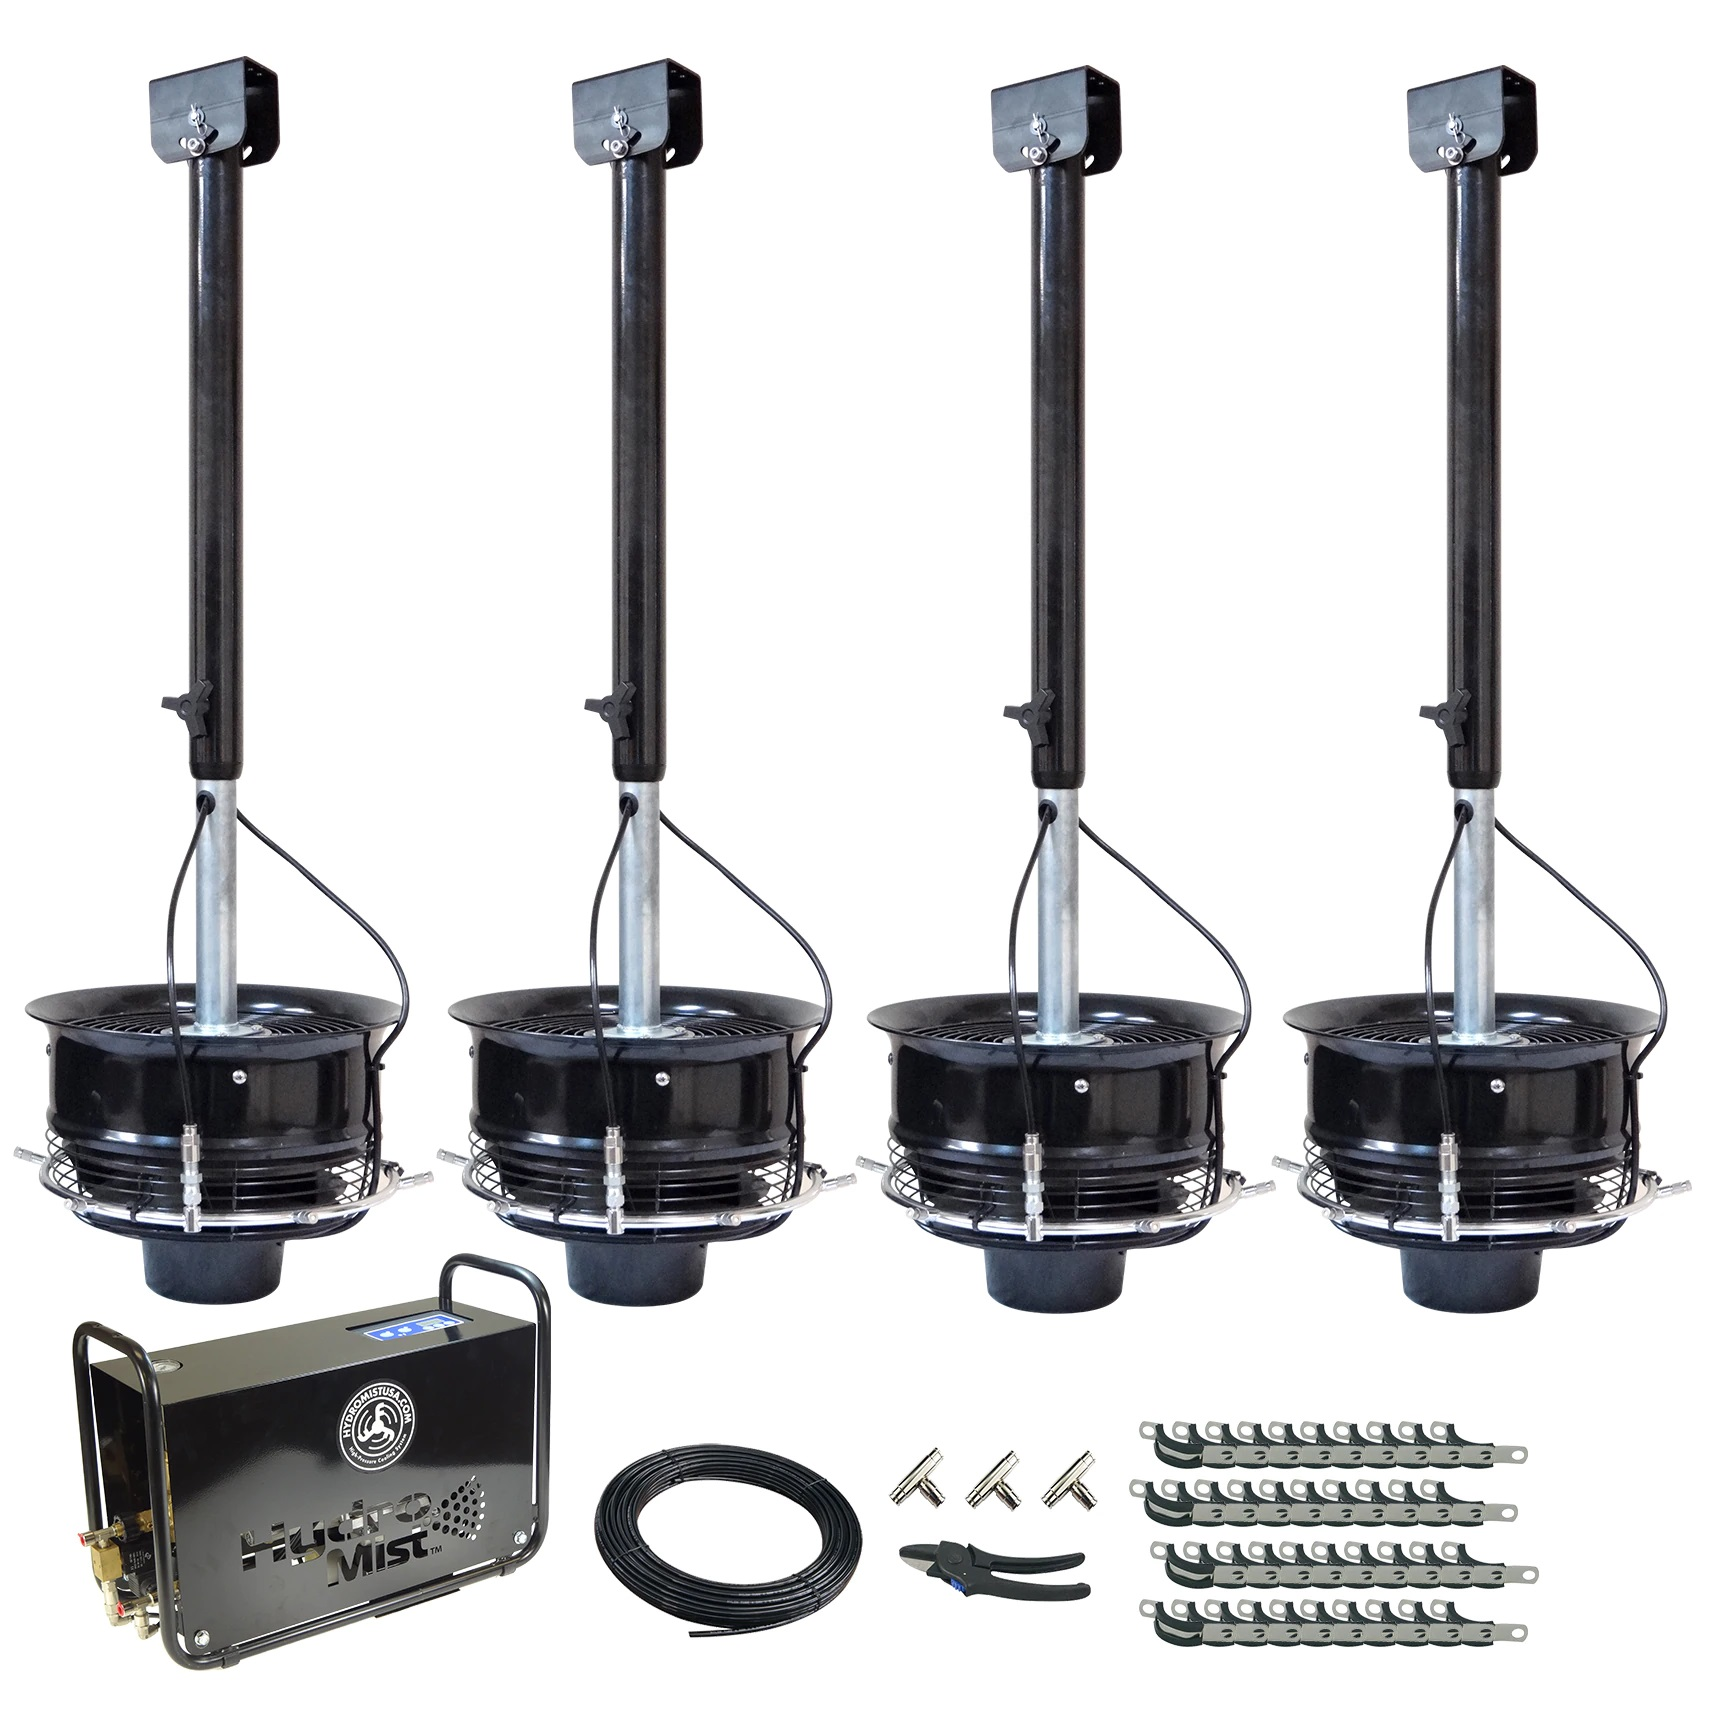 4 CentraMist Ceiling Mount Fans with Digi Pro Pump Package Black